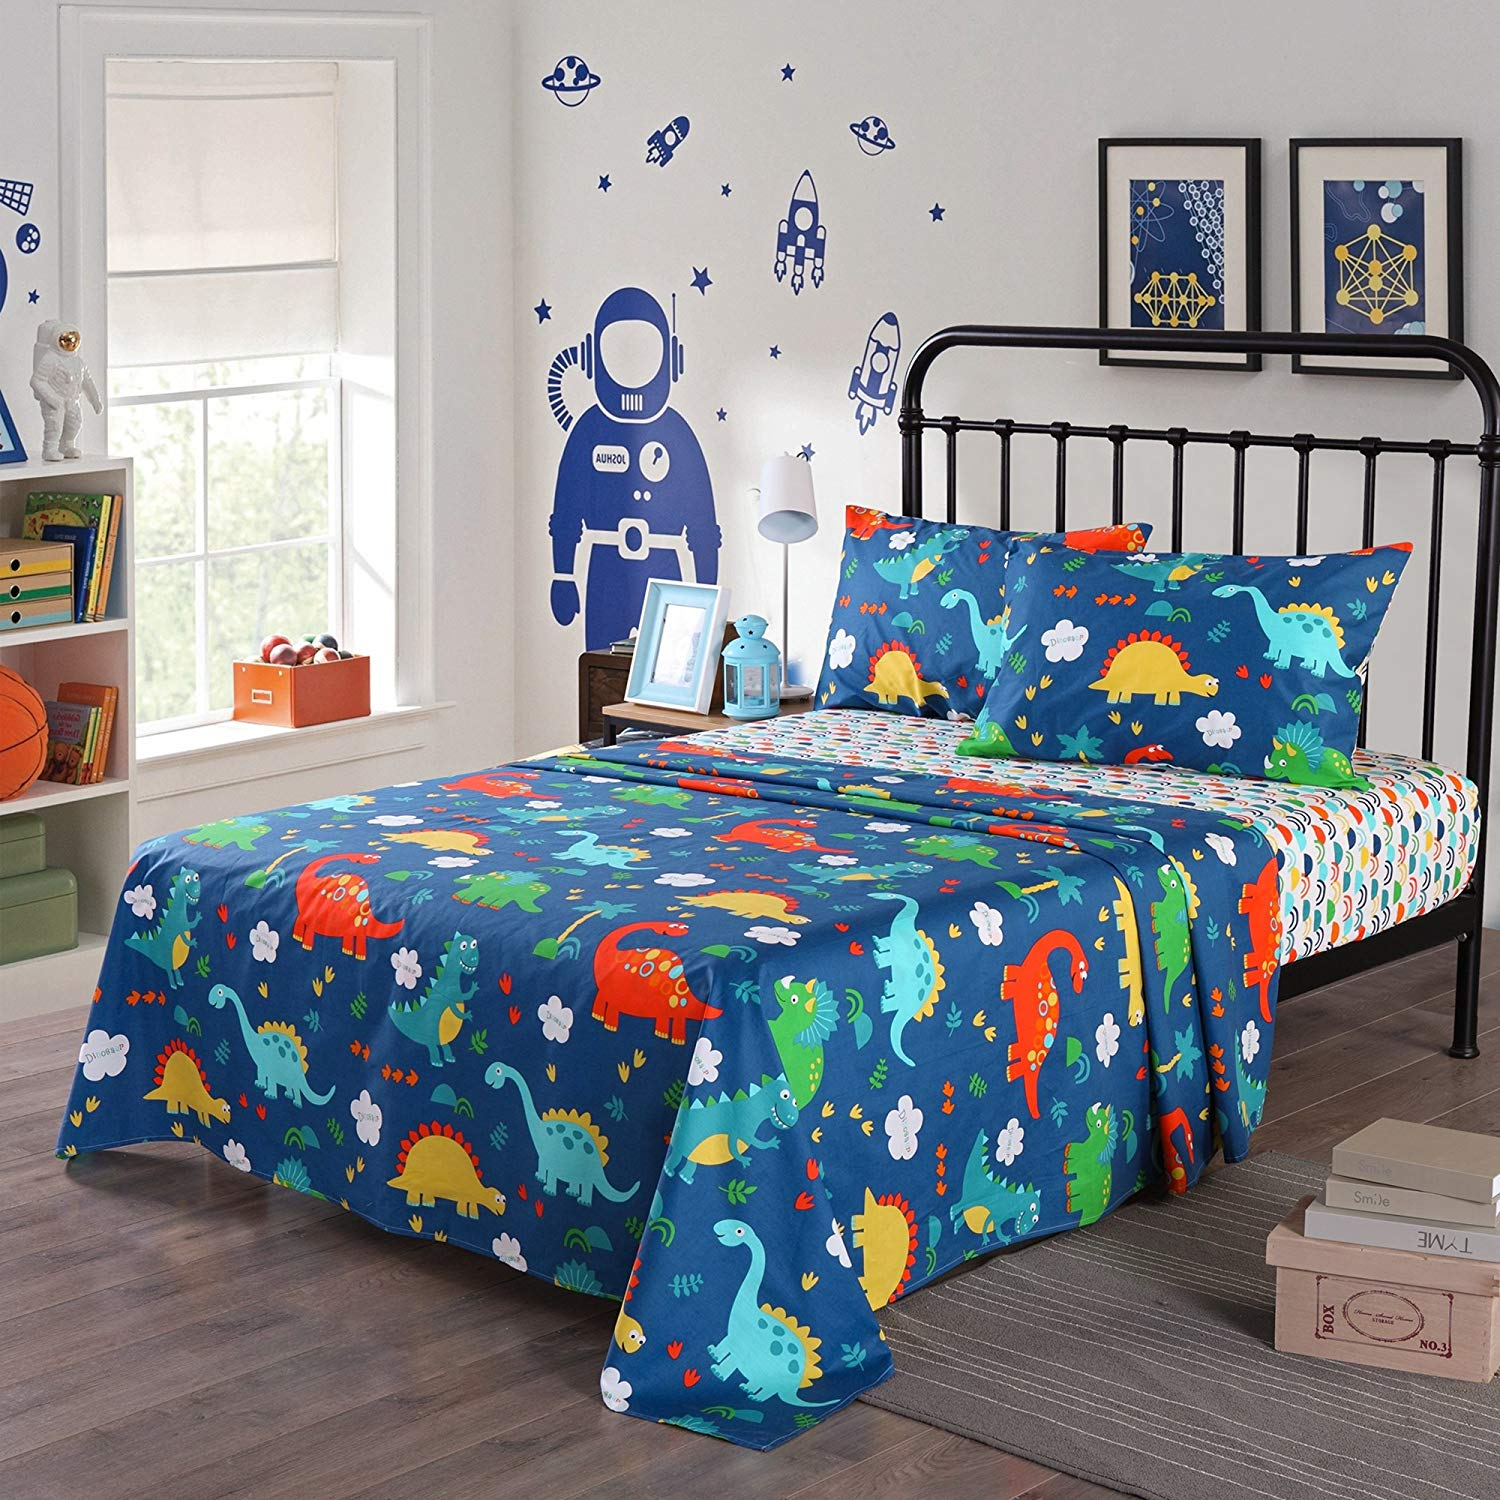 Comforter Bed Set Teen Bedding Modern Teal Black Animal ... |Teen Bedding Sets For Fun